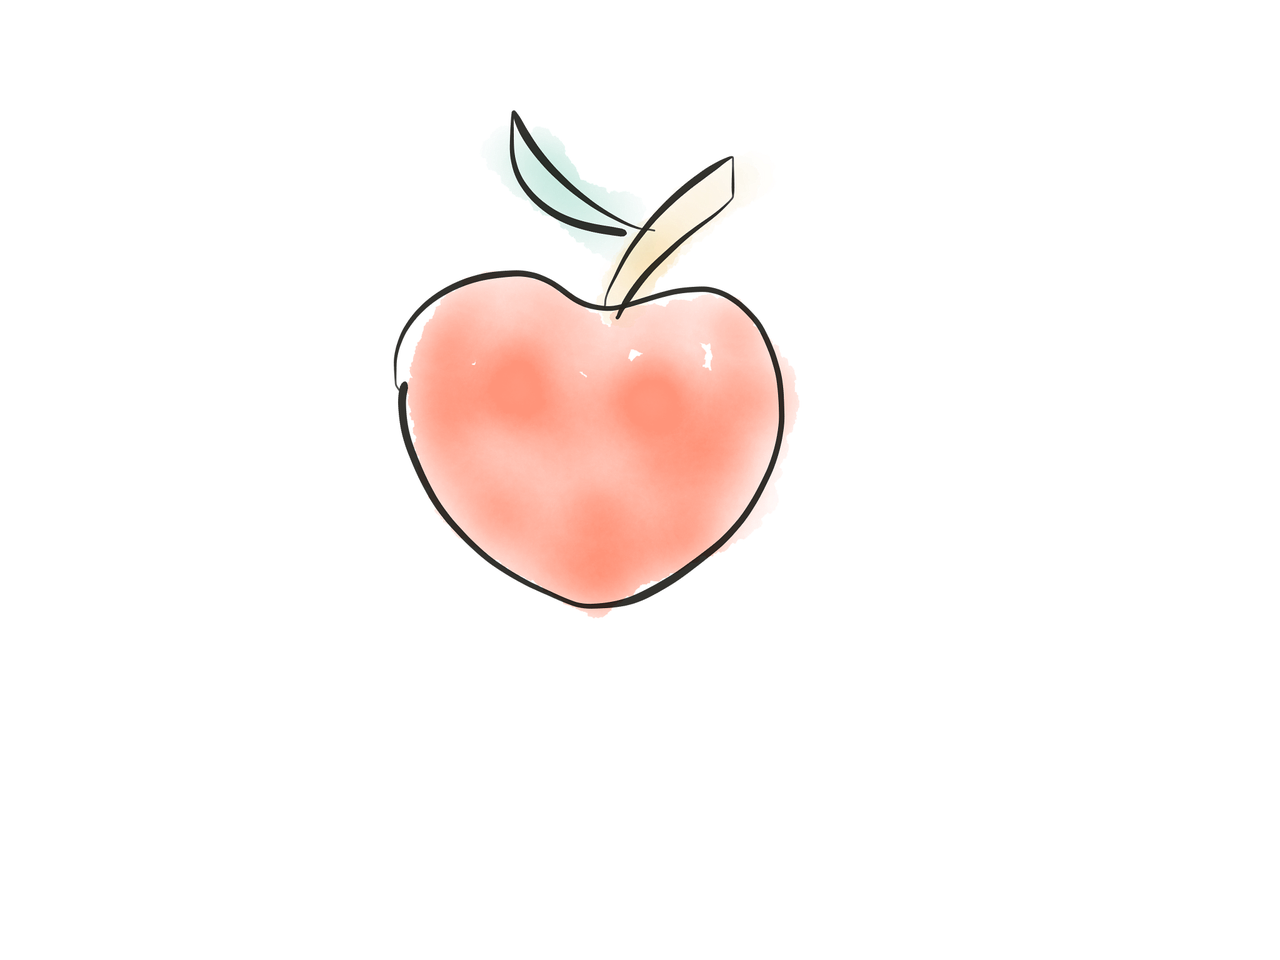 Apple Doodle Fruit Sketch Hand Drawing Free Image From Needpix Com